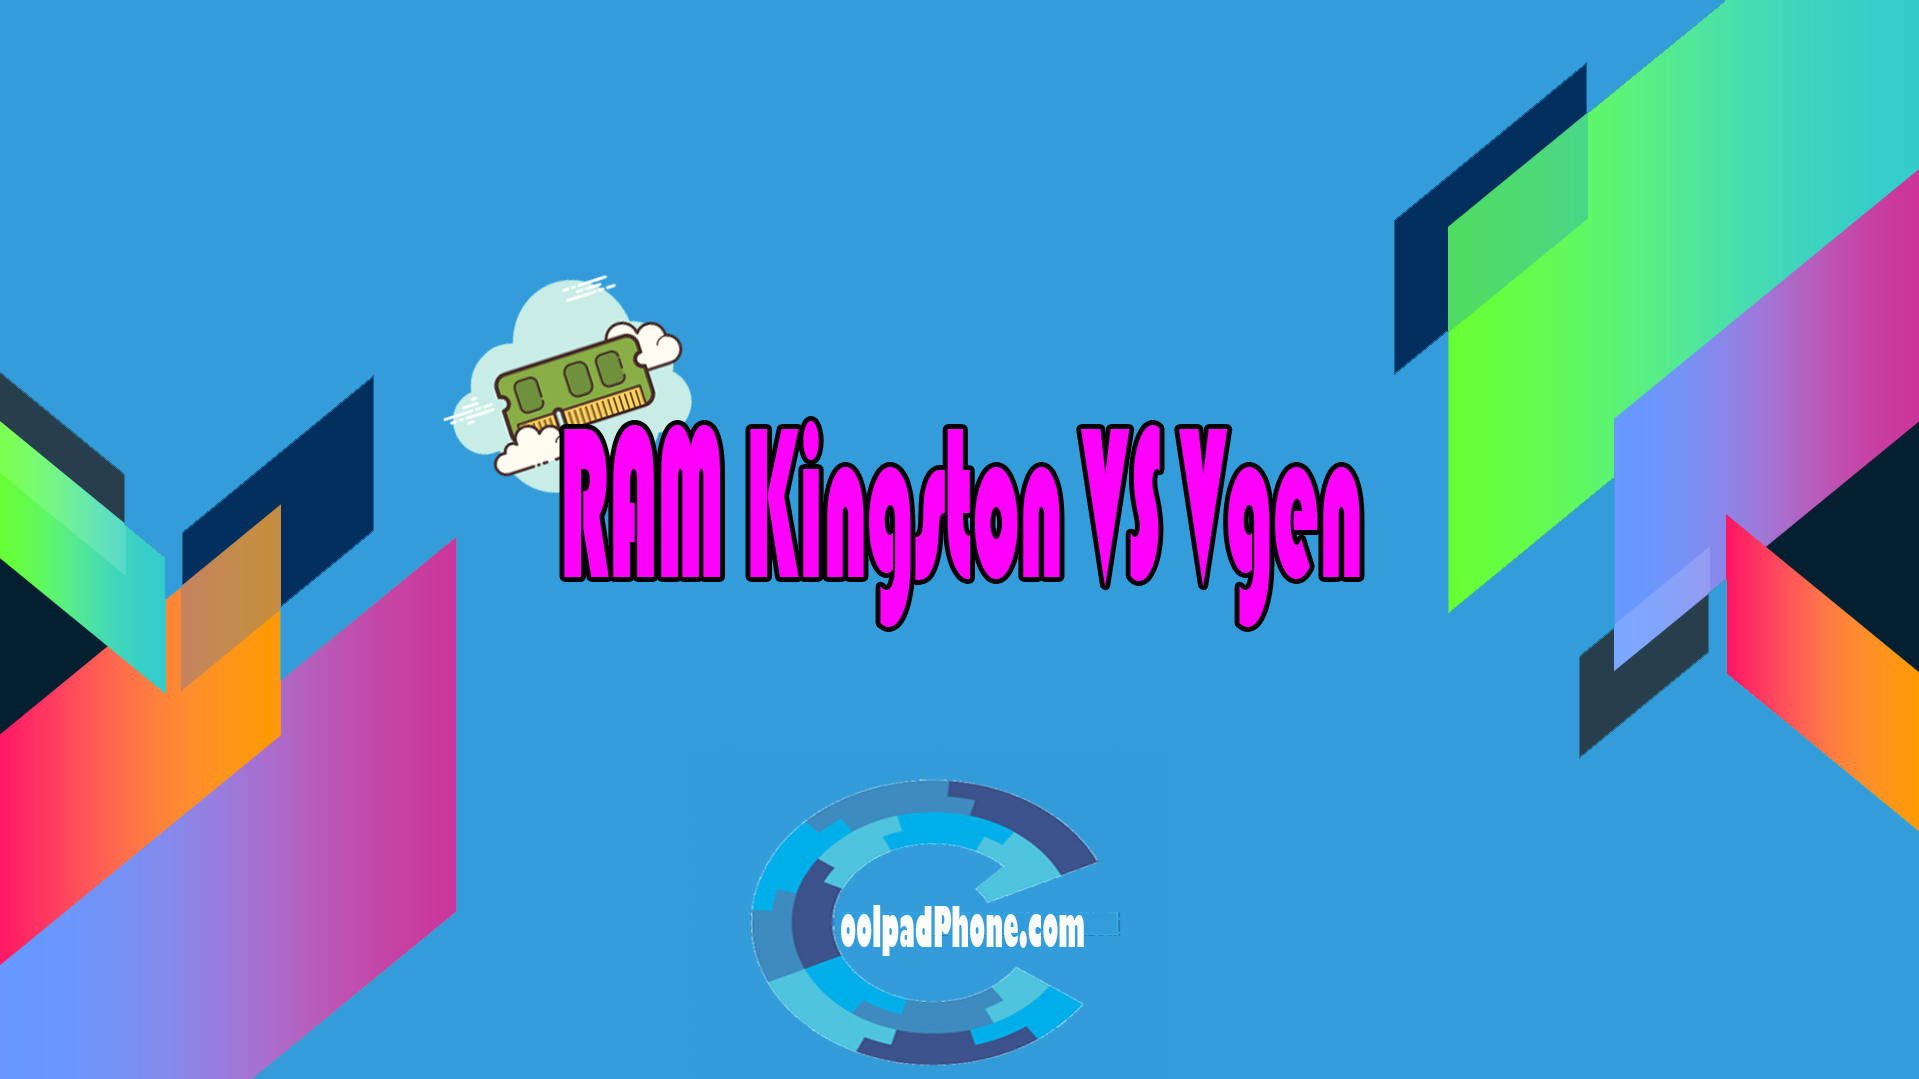 RAM Kingston VS Vgen